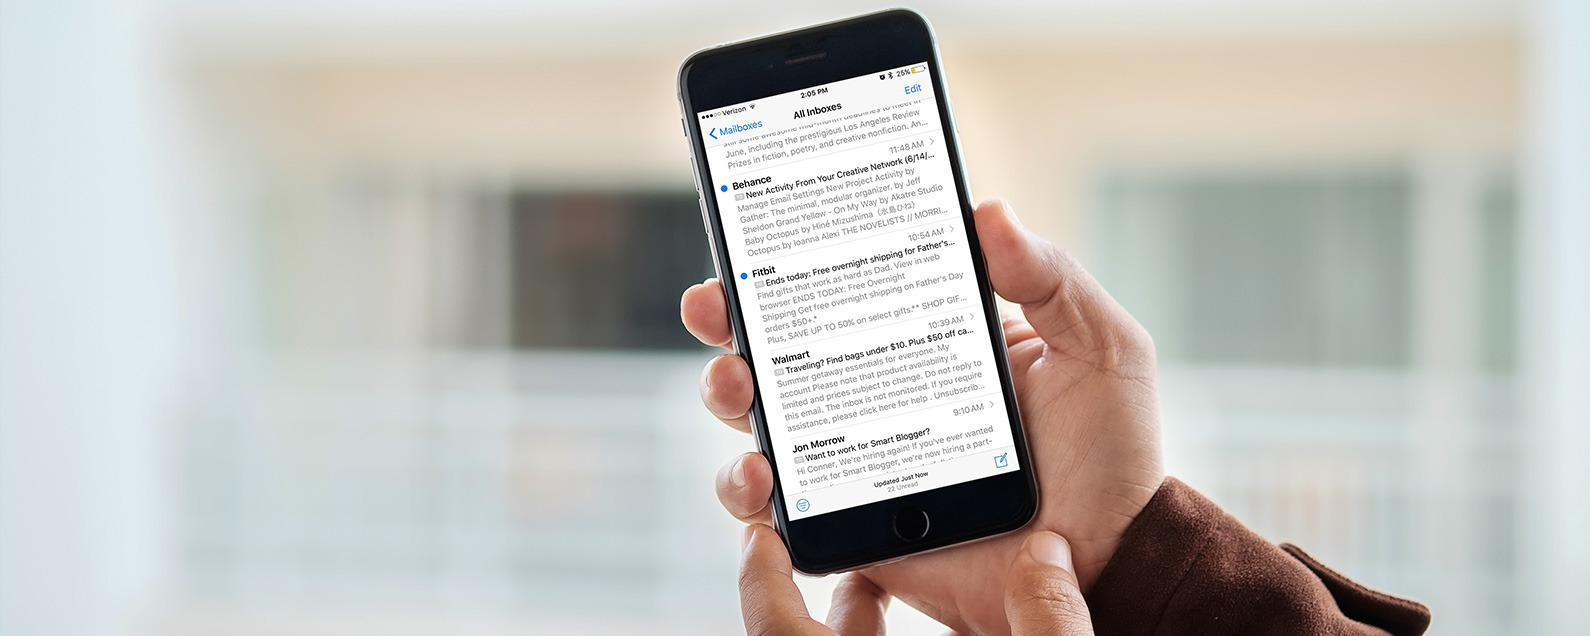 How to Change How Many Lines of an Email Are Previewed in the Mail App on iPhone